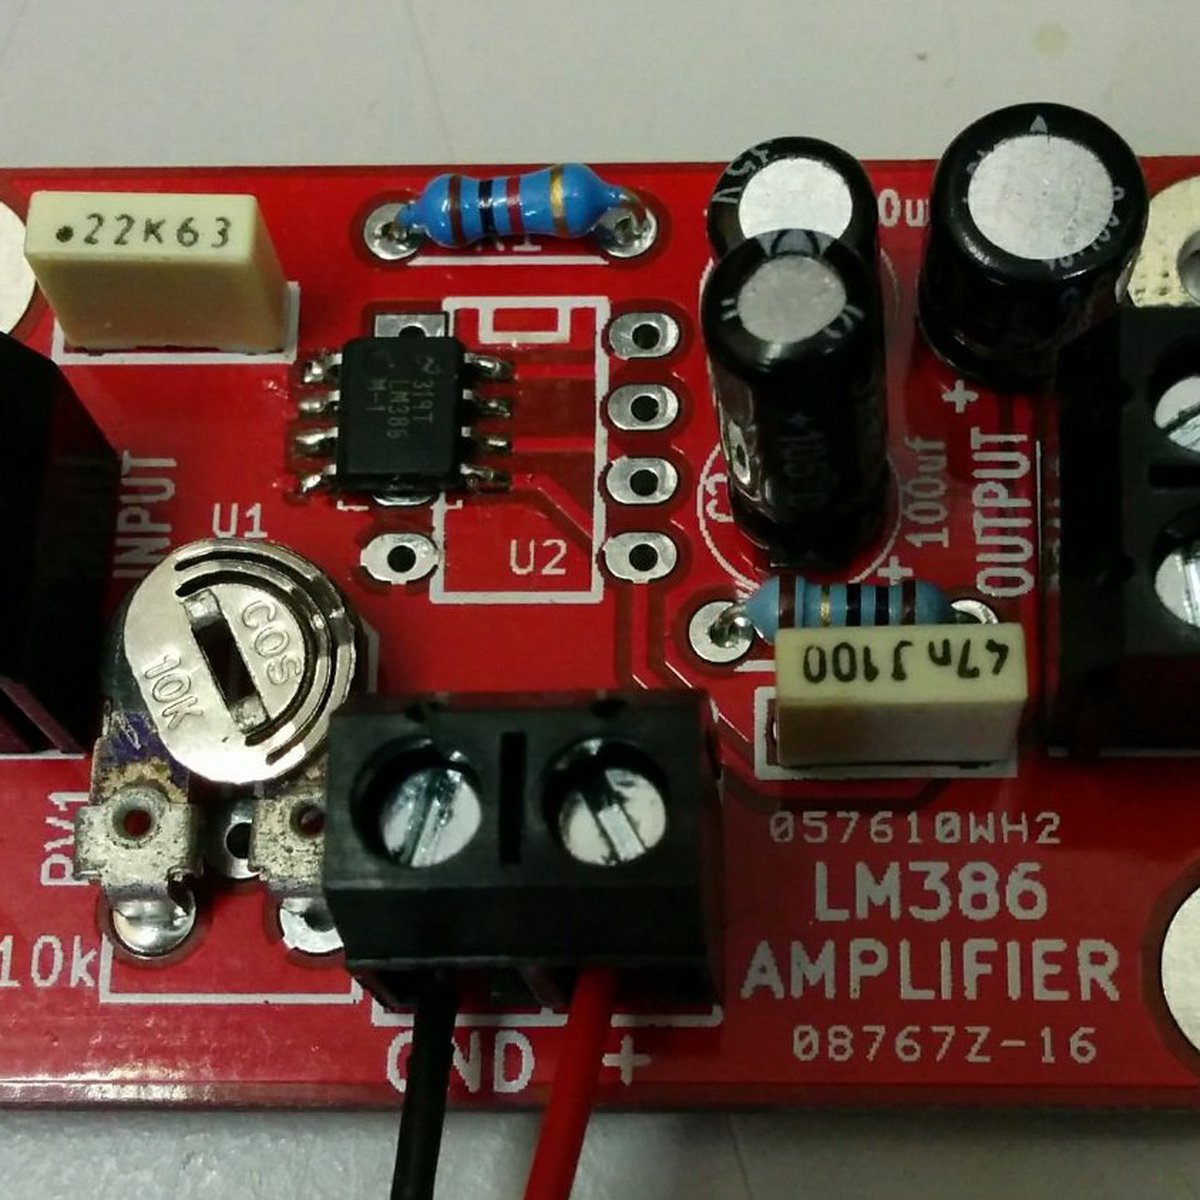 1w Mono Amplifier Kit From The Curious Electric Company On Tindie Simple Siren Using Dual Opamp Electronics Project